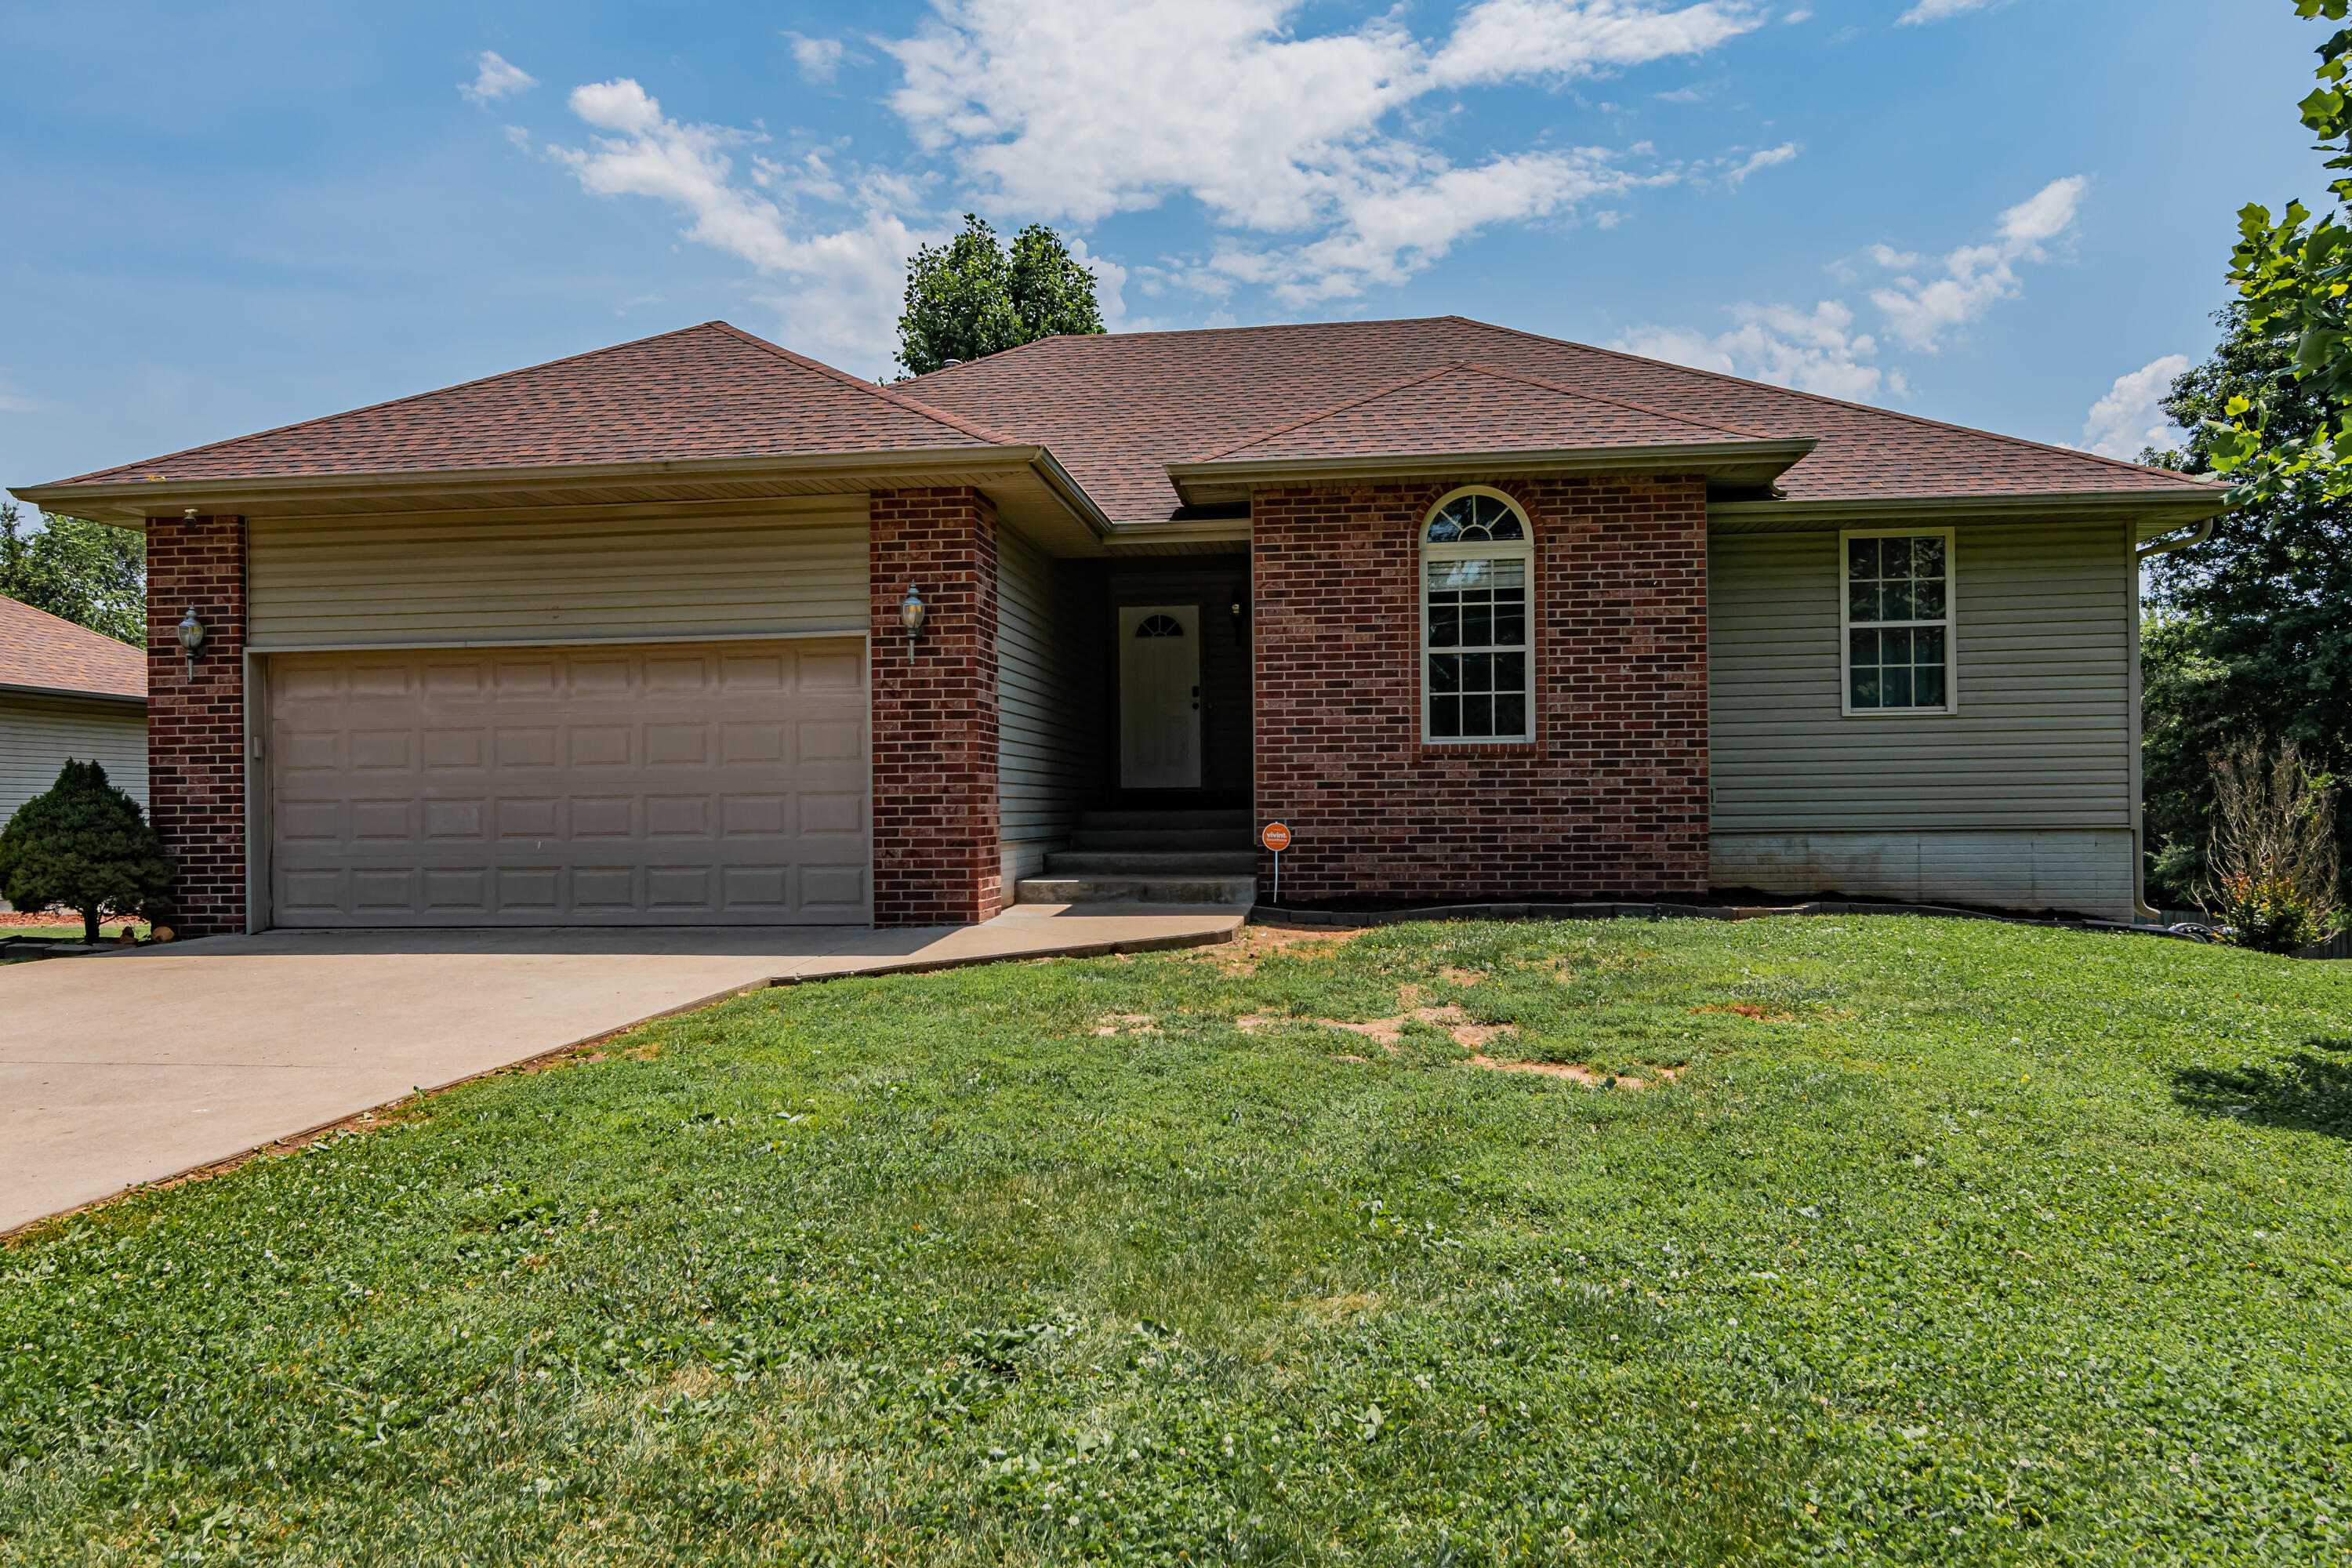 Property for sale at 2102 South 18th, Ozark,  Missouri 65721